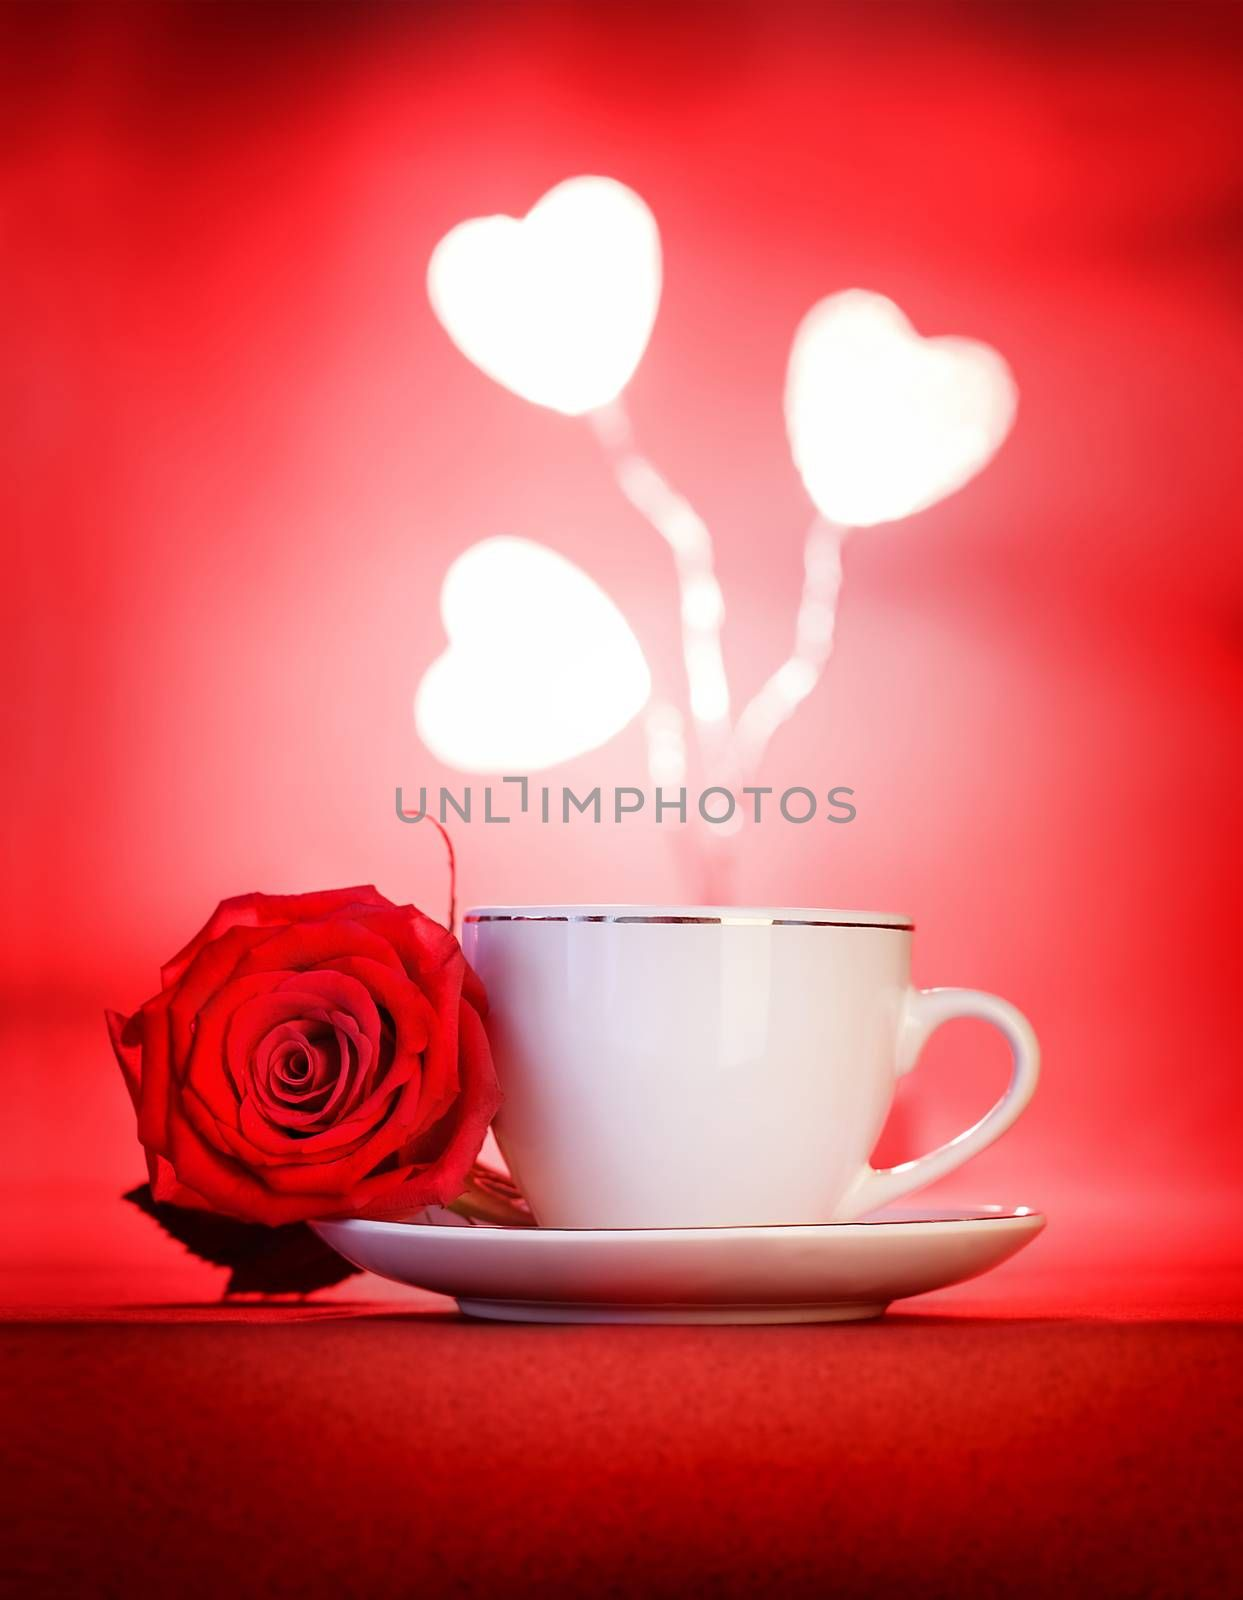 Cute little white cup of coffee with rose flower and hearts decoration over red background, romantic table setting, Valentine day celebration